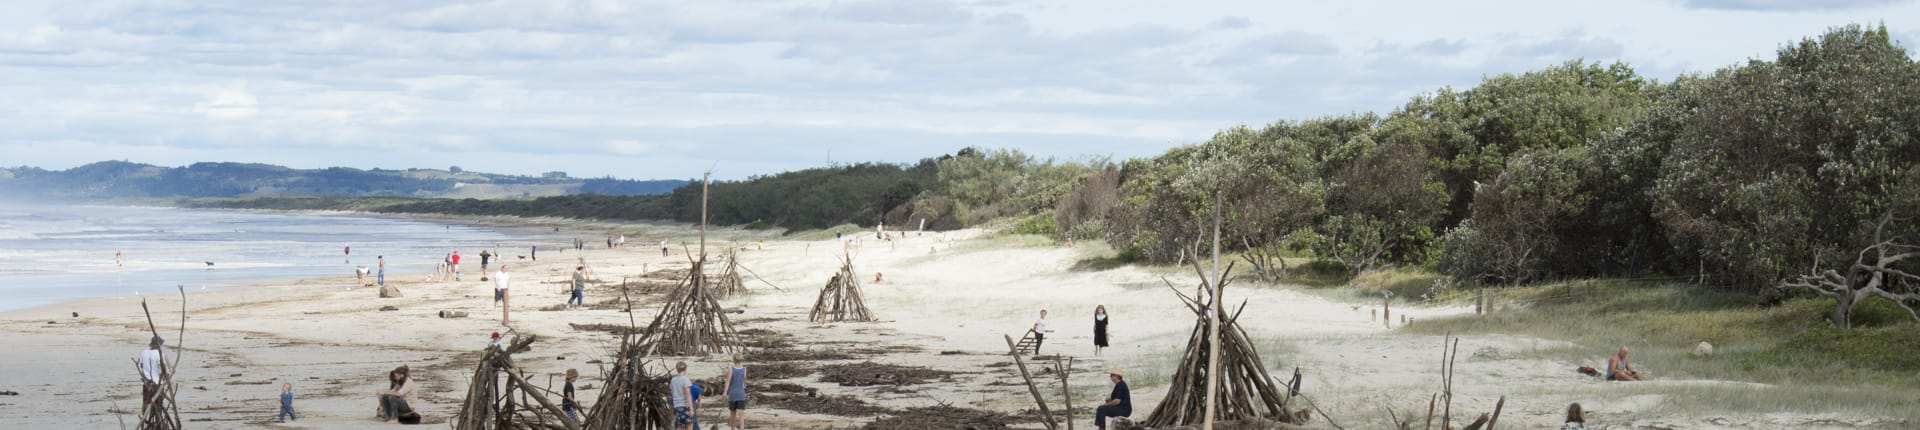 Kids and adults building teepees from driftwood on the beach